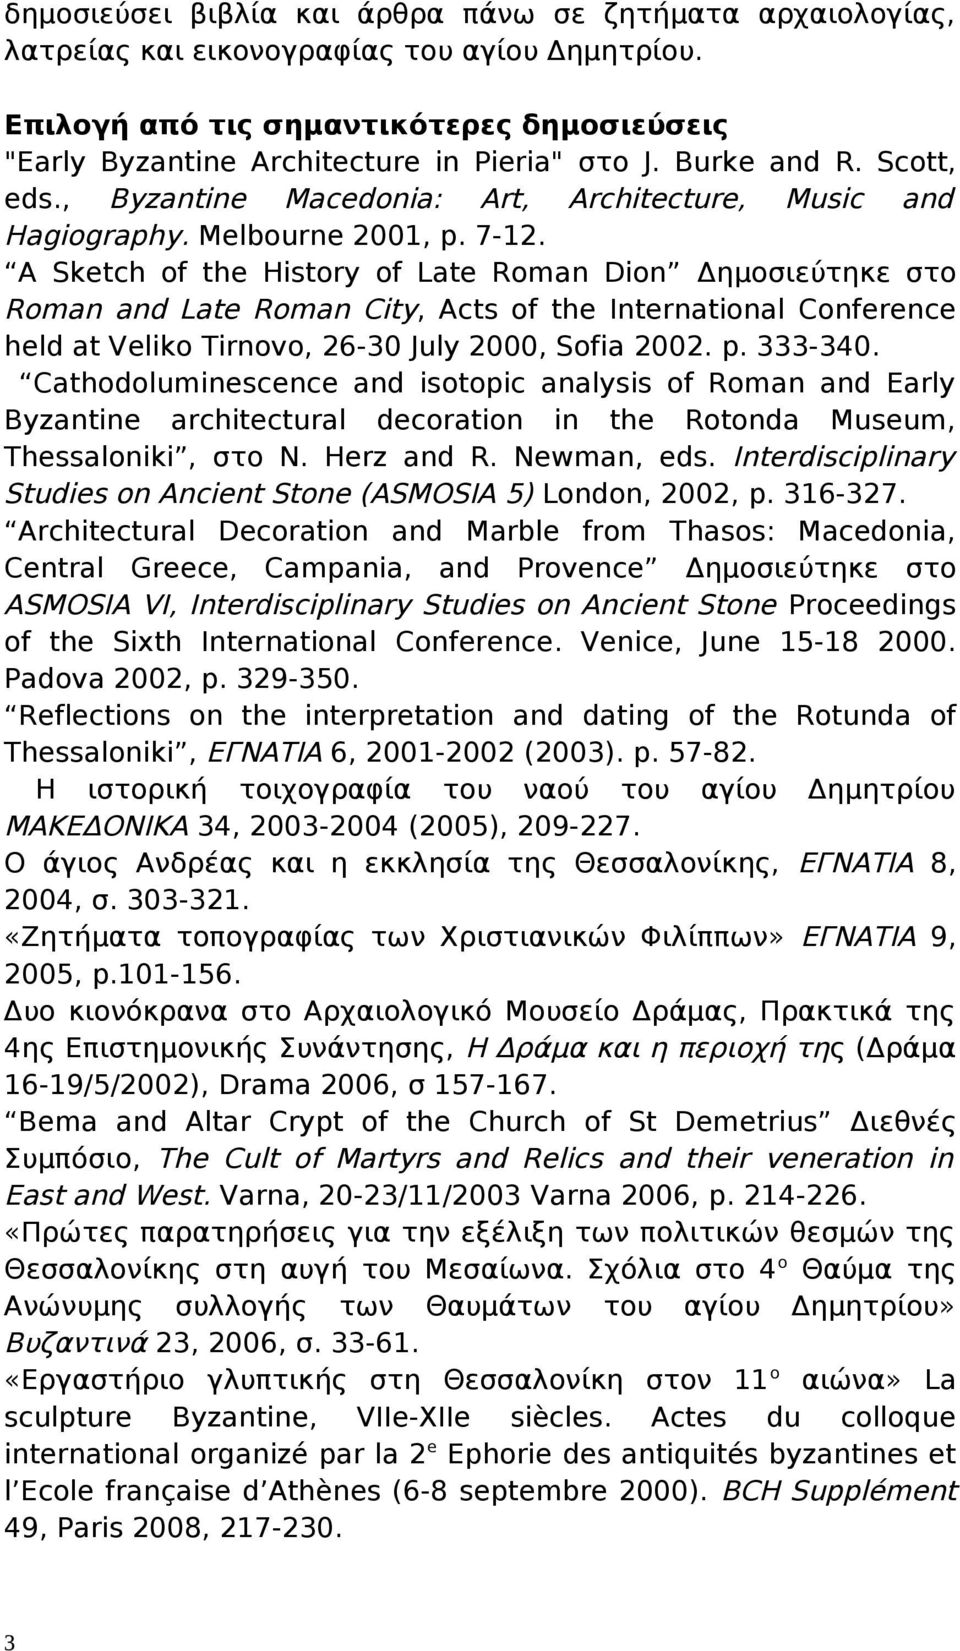 A Sketch of the History of Late Roman Dion Δημοσιεύτηκε στο Roman and Late Roman City, Acts of the International Conference held at Veliko Tirnovo, 26-30 July 2000, Sofia 2002. p. 333-340.